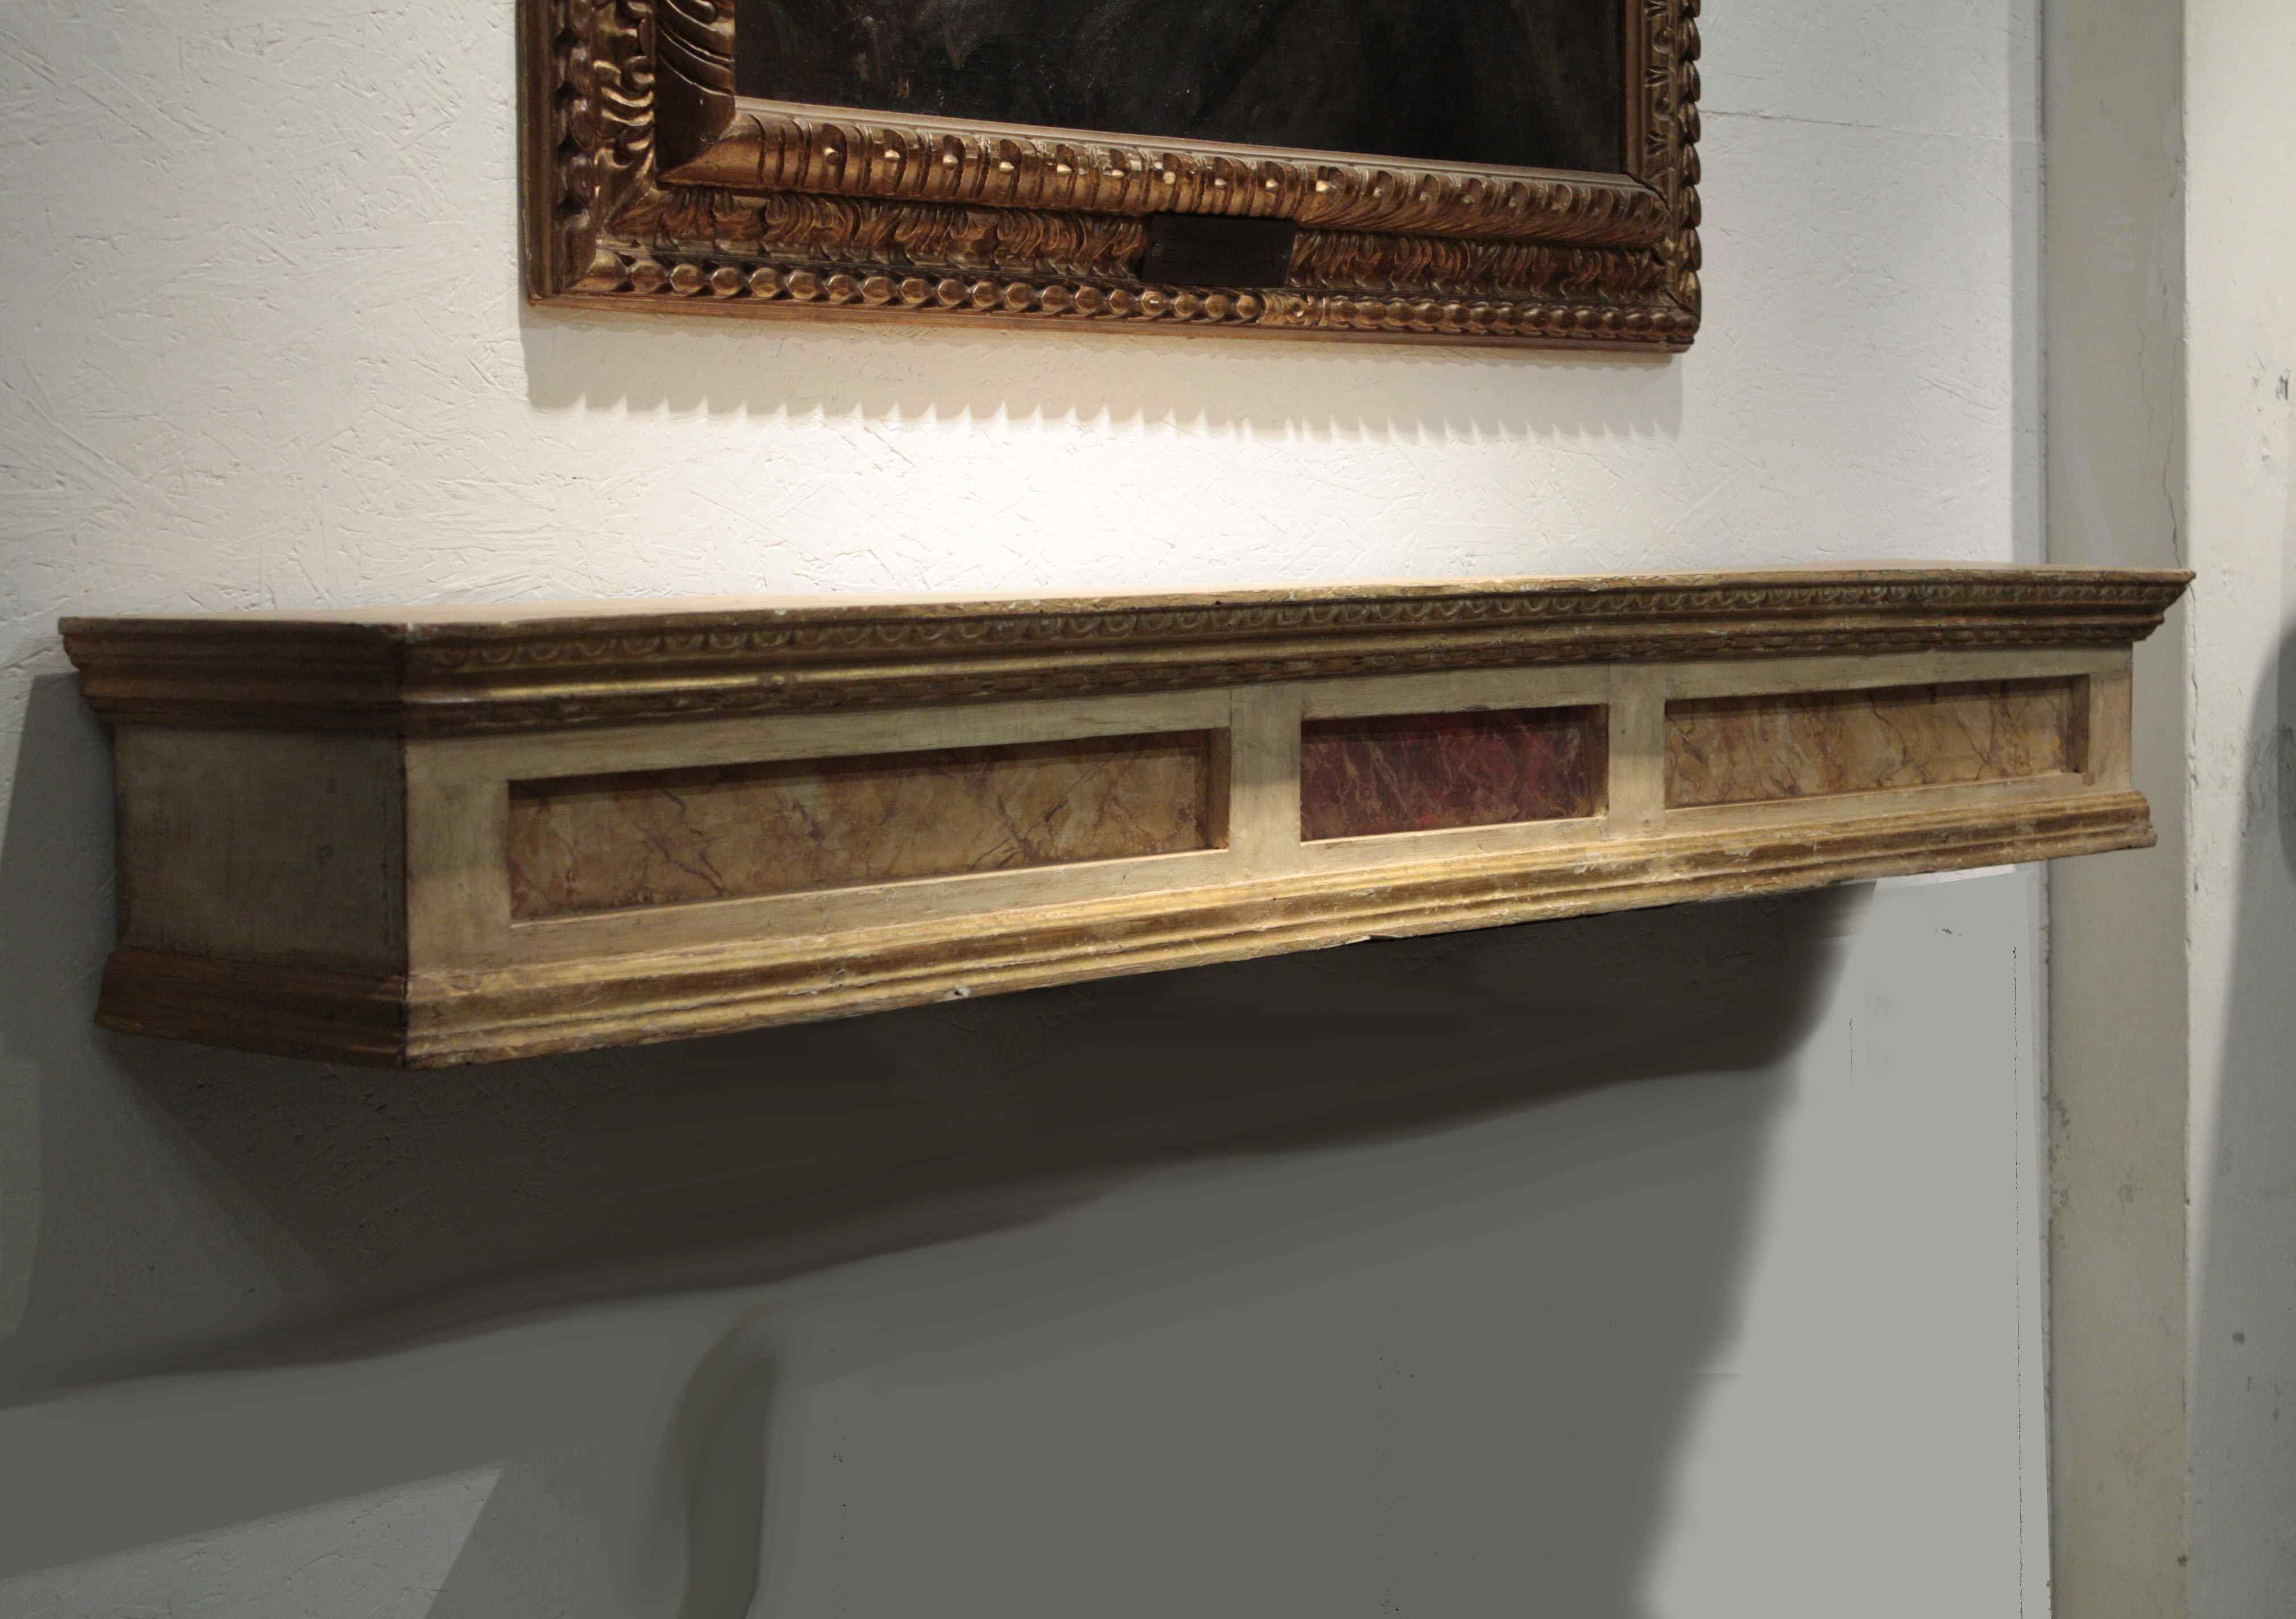 Lacquered and gilded shelf, Sec. XVIII